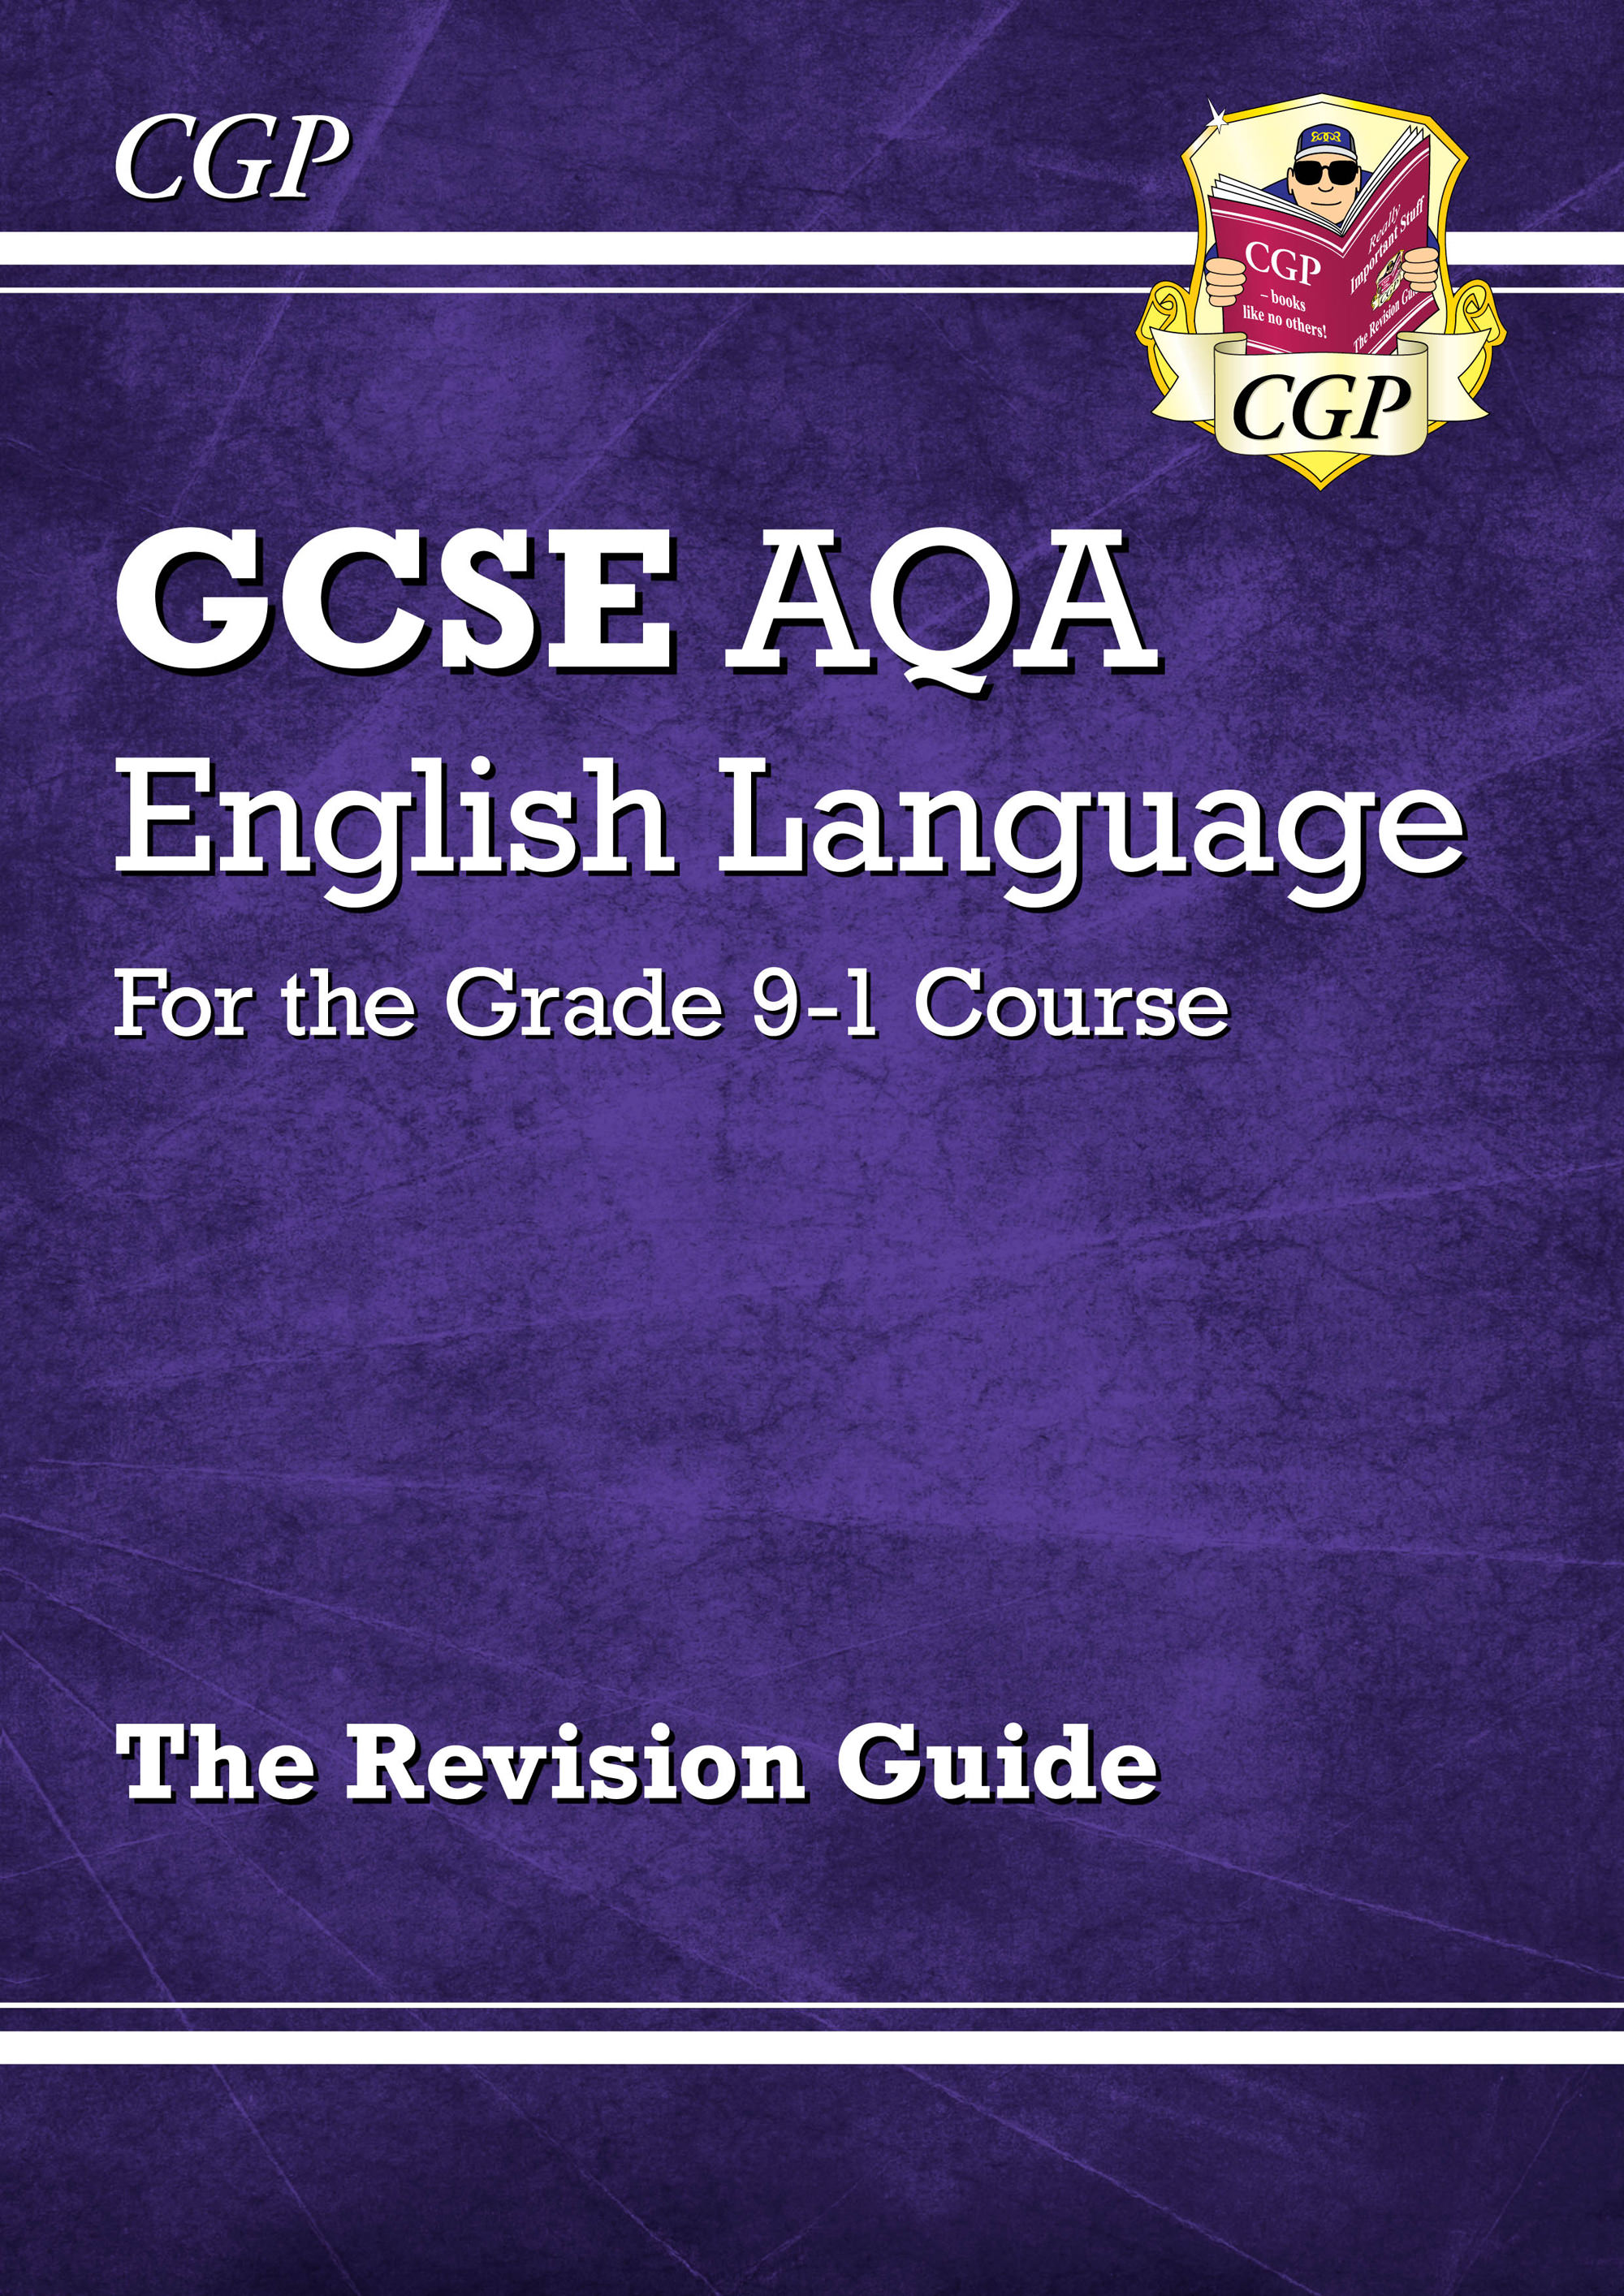 ENAR41DK - GCSE English Language AQA Revision Guide - for the Grade 9-1 Course